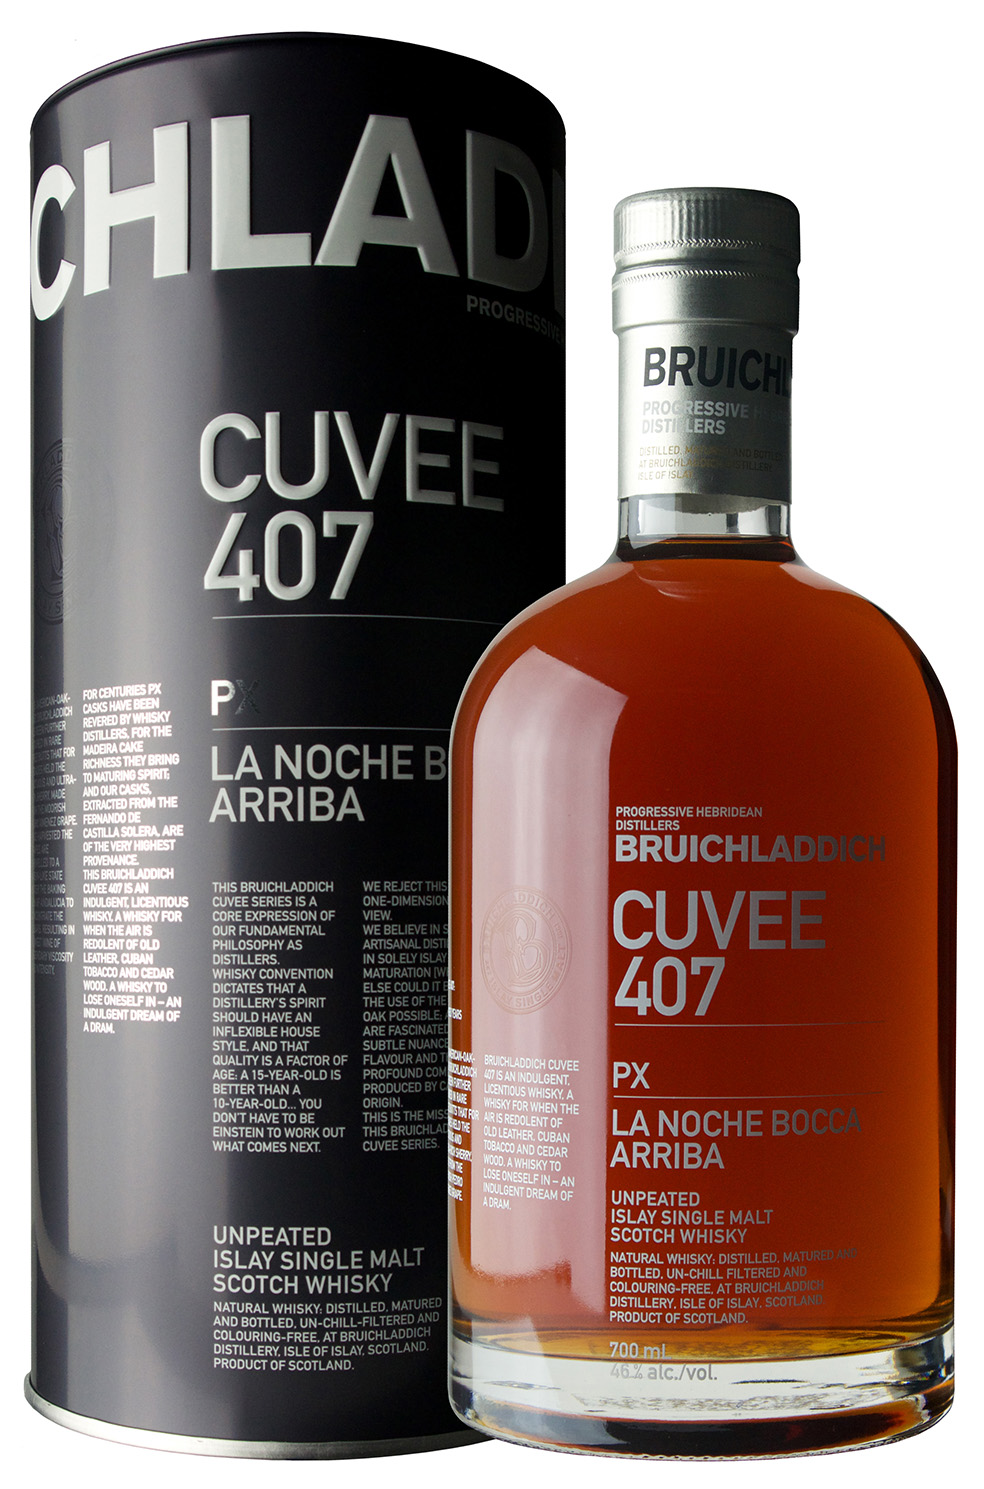 Billede: Bruichladdich Cuvee 407 PX - tube and bottle.jpg